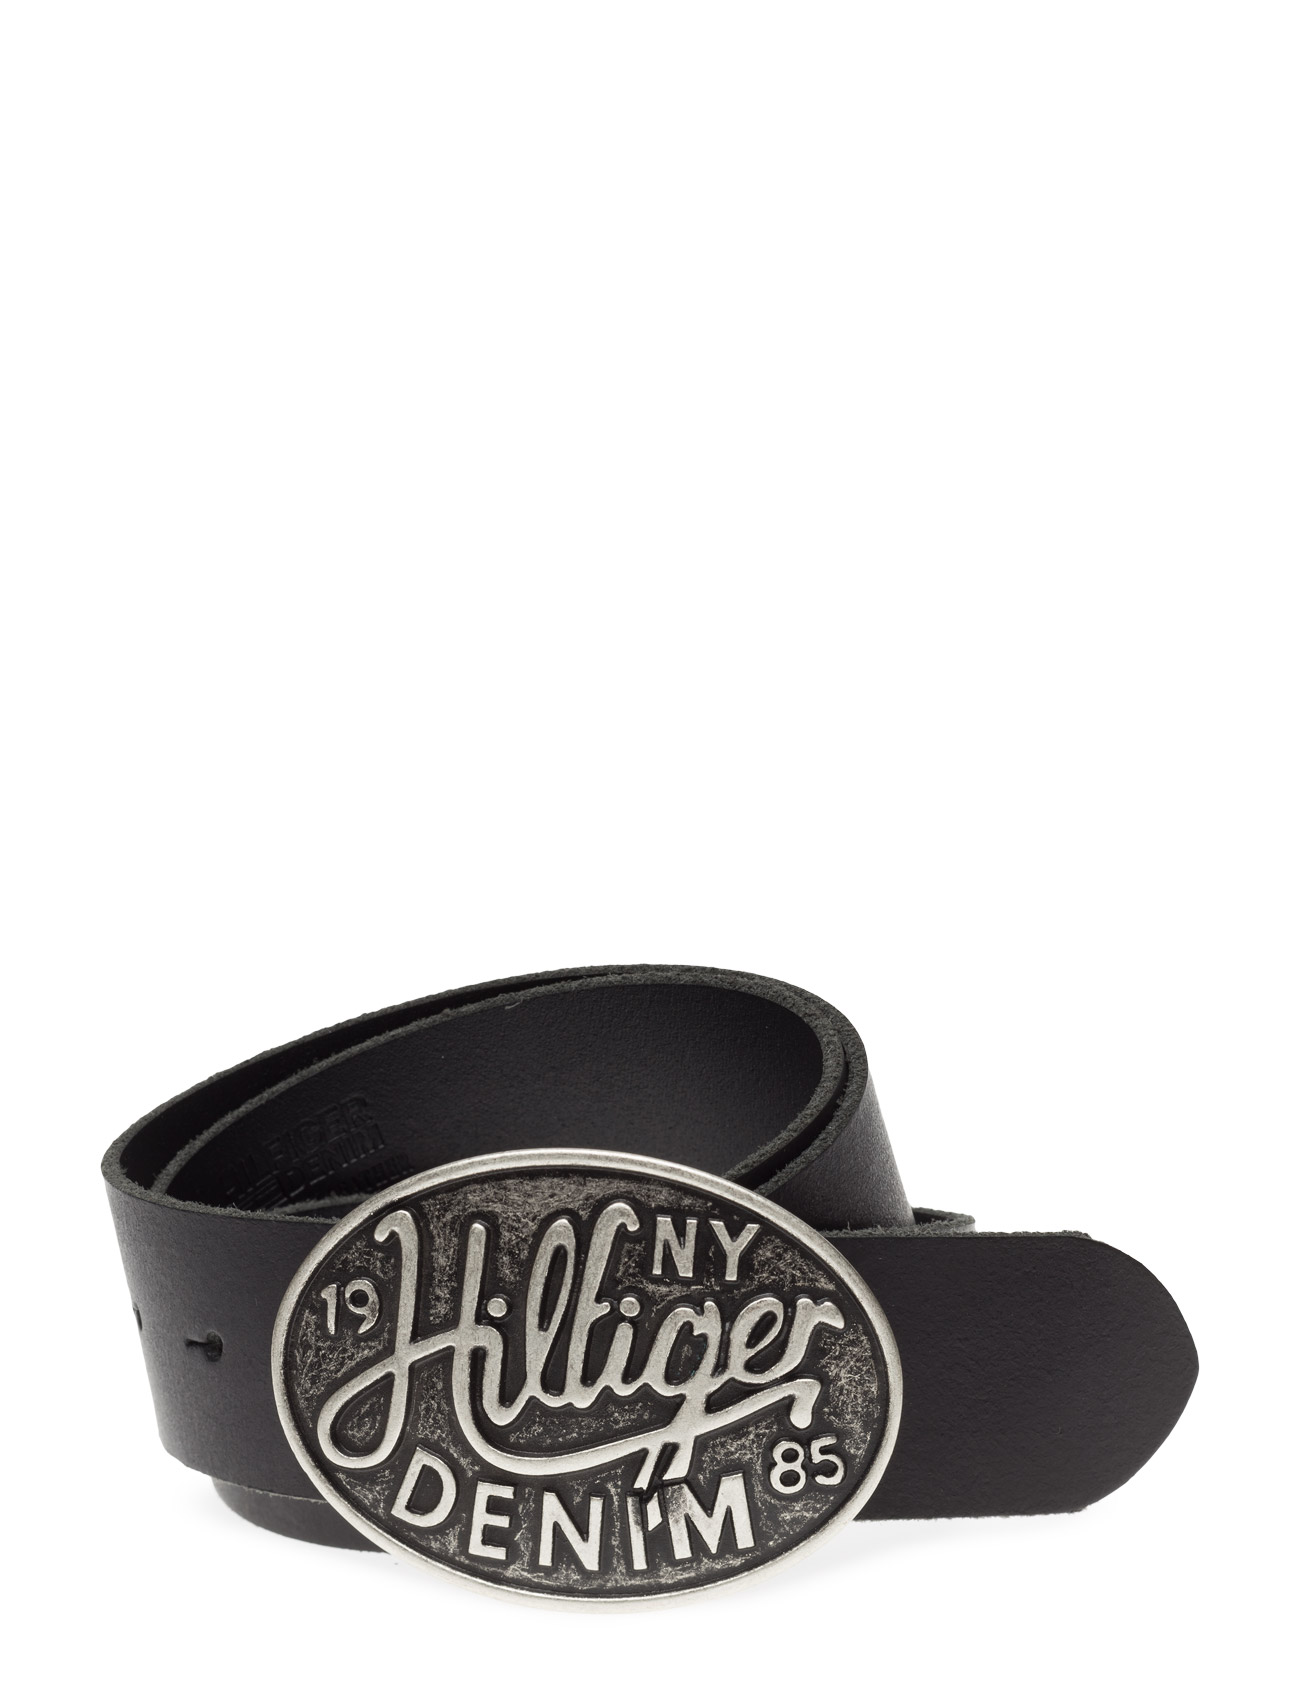 Thdm Buckle Leather Belt 4 Hilfiger Denim Bälten